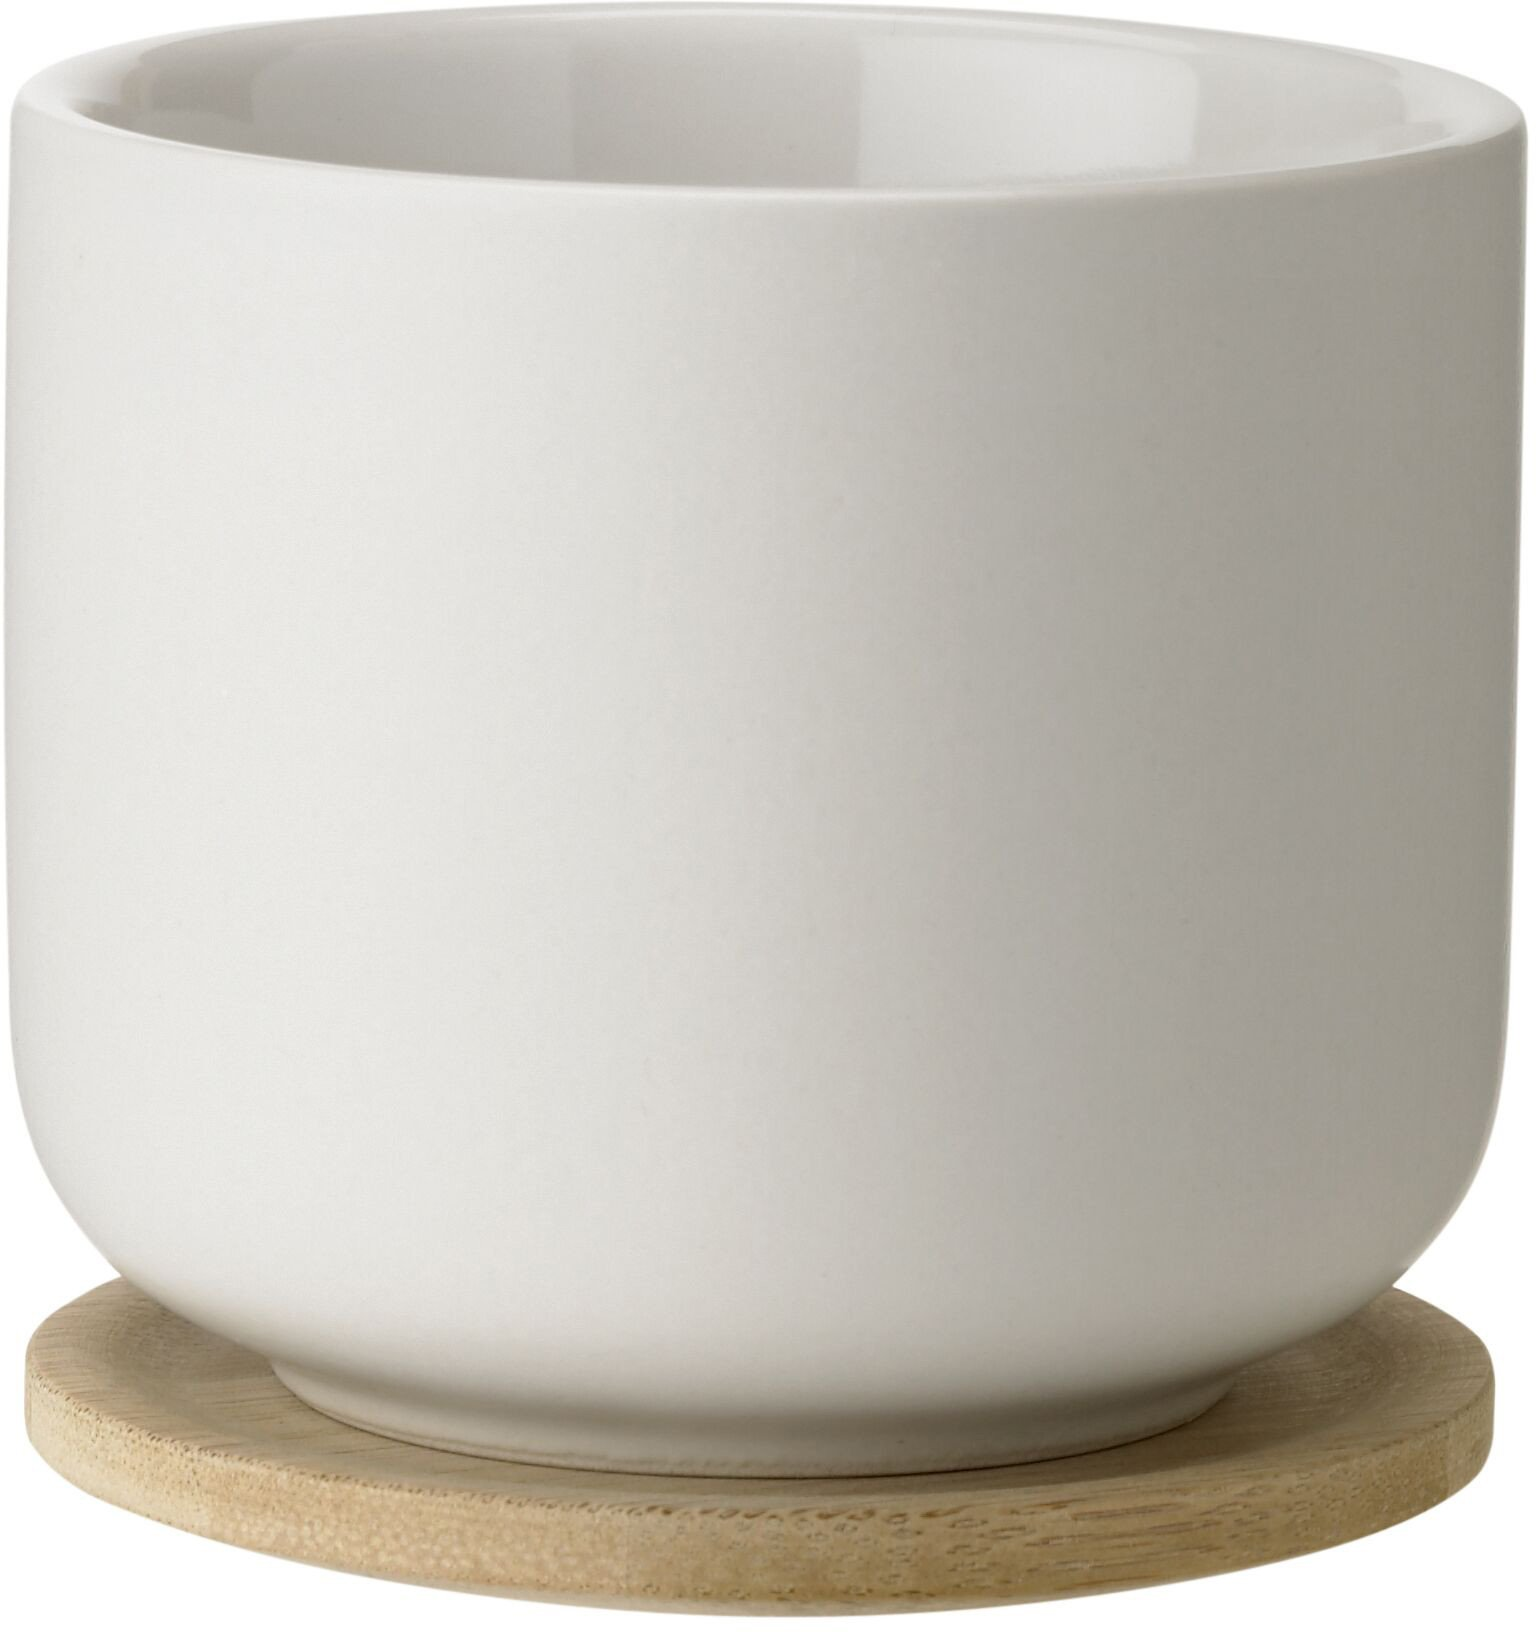 Theo Tea Mug with Coaster Sand by F. Cayouette for Stelton